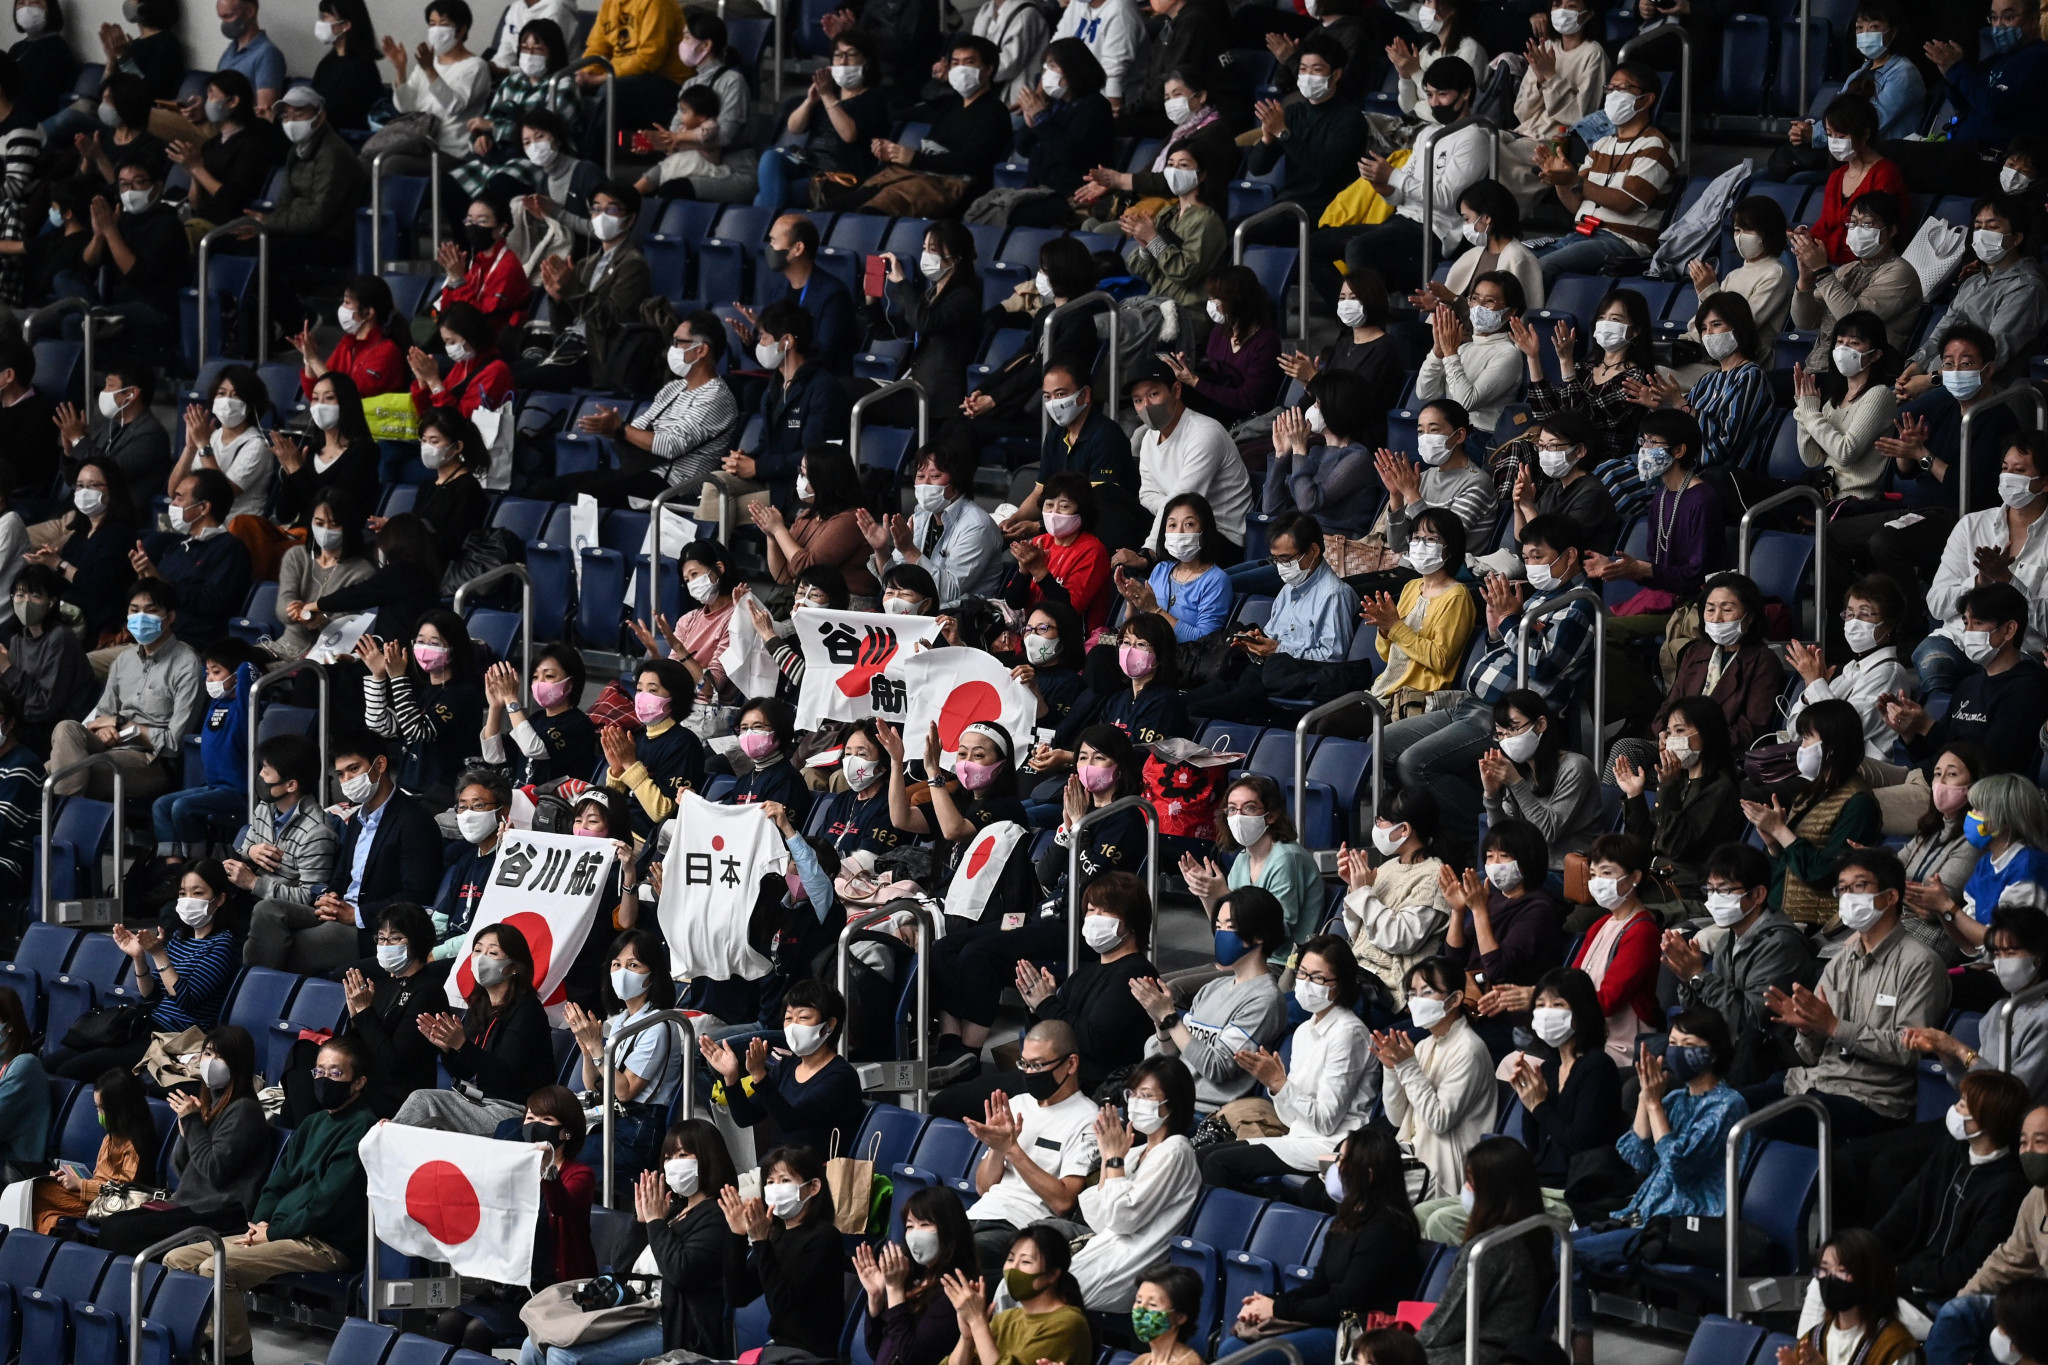 Fans were allowed into the Yoyogi National Gymnasium to watch the recent Friendship and Solidarity competition ©Getty Images